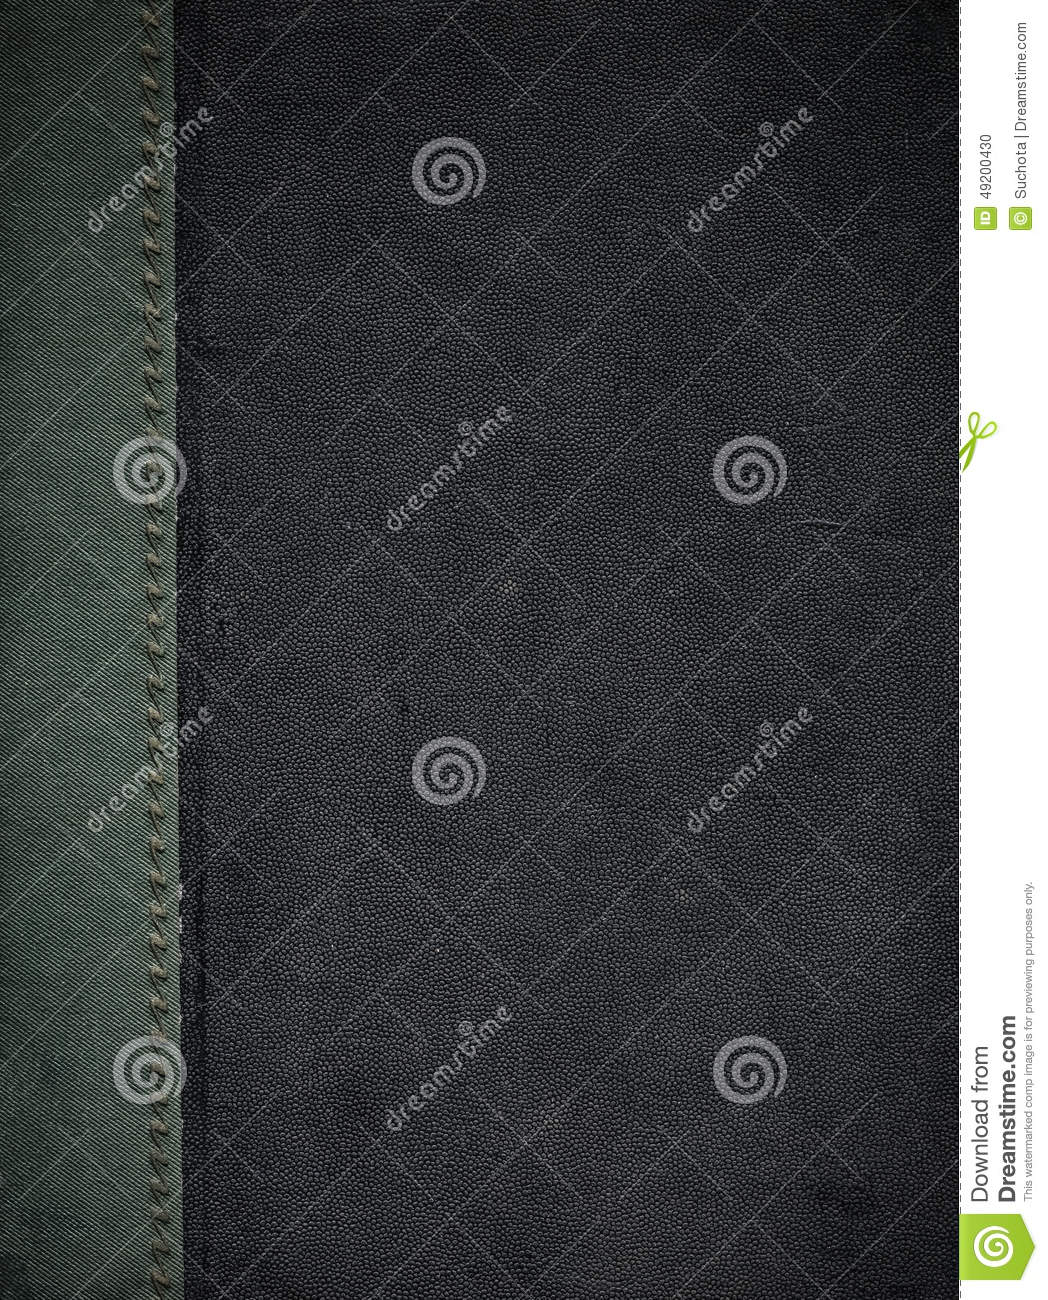 Old Book Cover Fonts : Old book cover stock illustration image